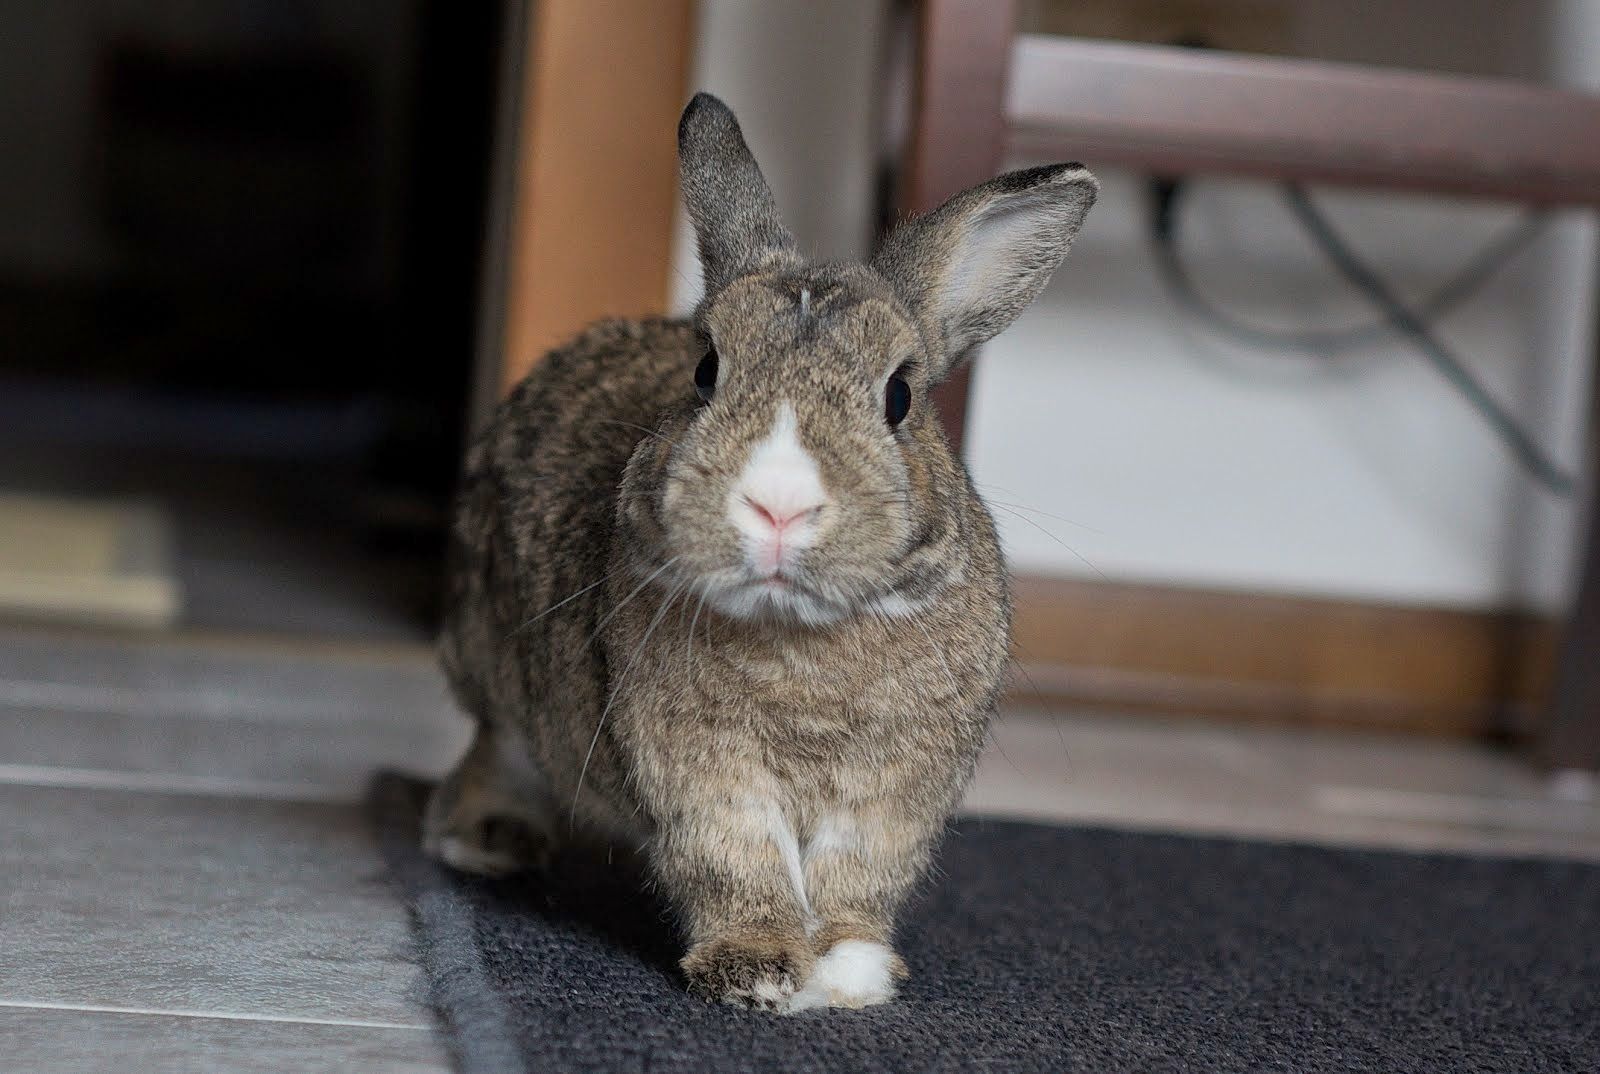 The Disapproving Rabbit